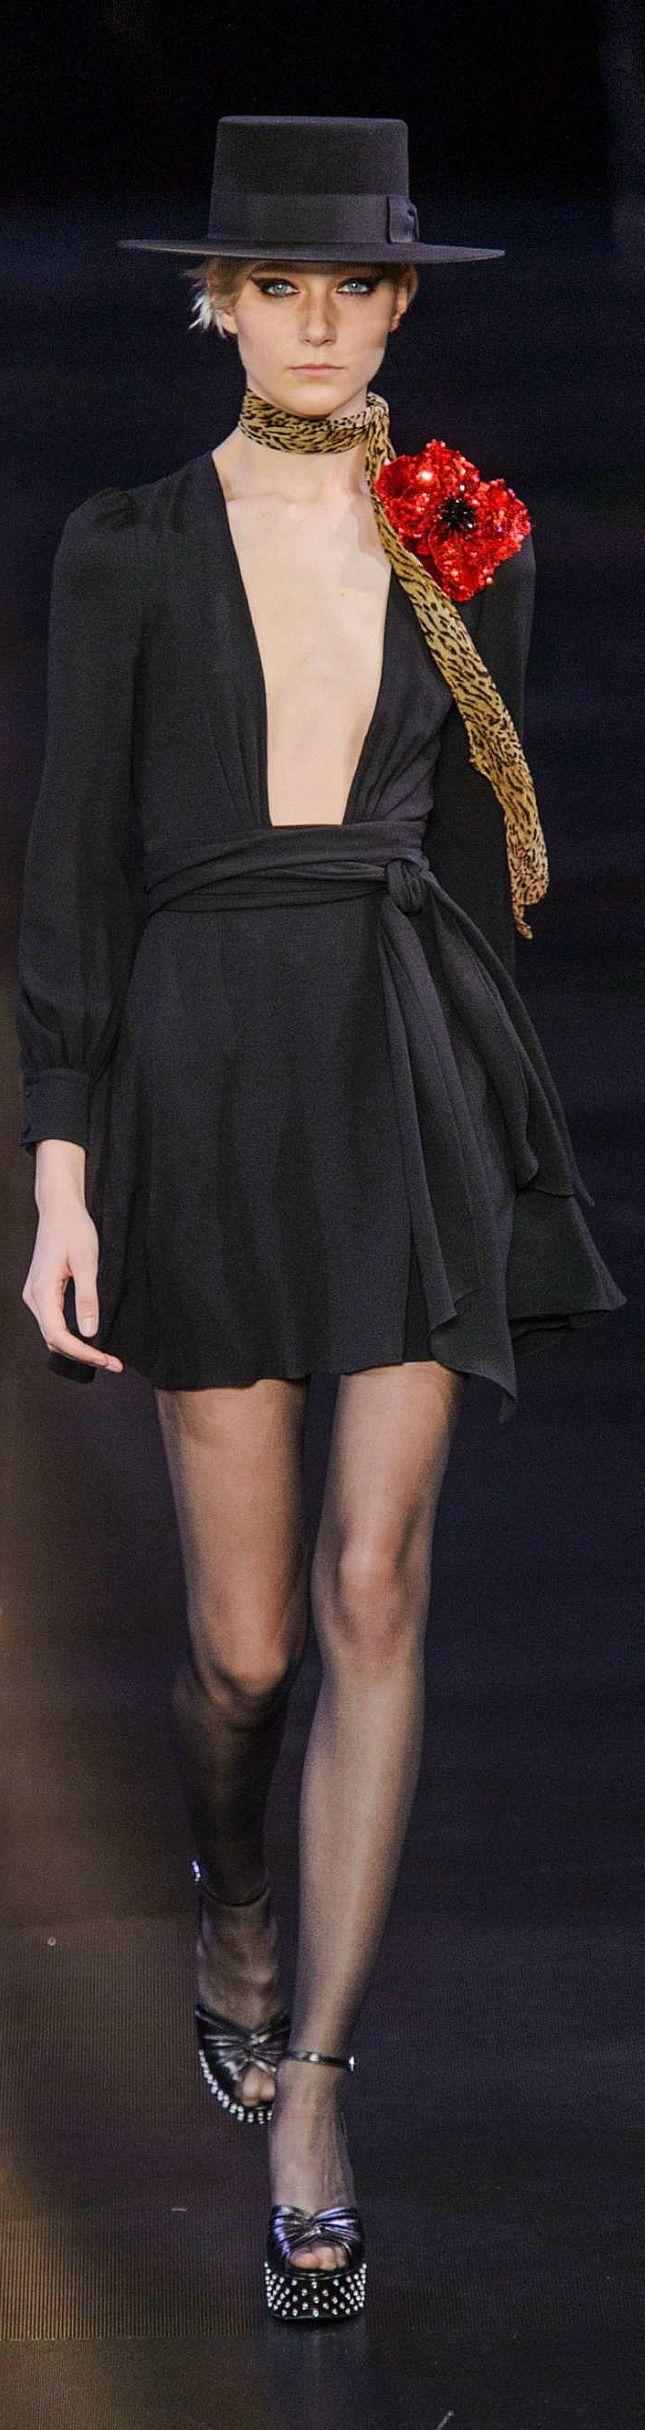 Perfect long-sleeved, intense plunging dress with wrap around belt.